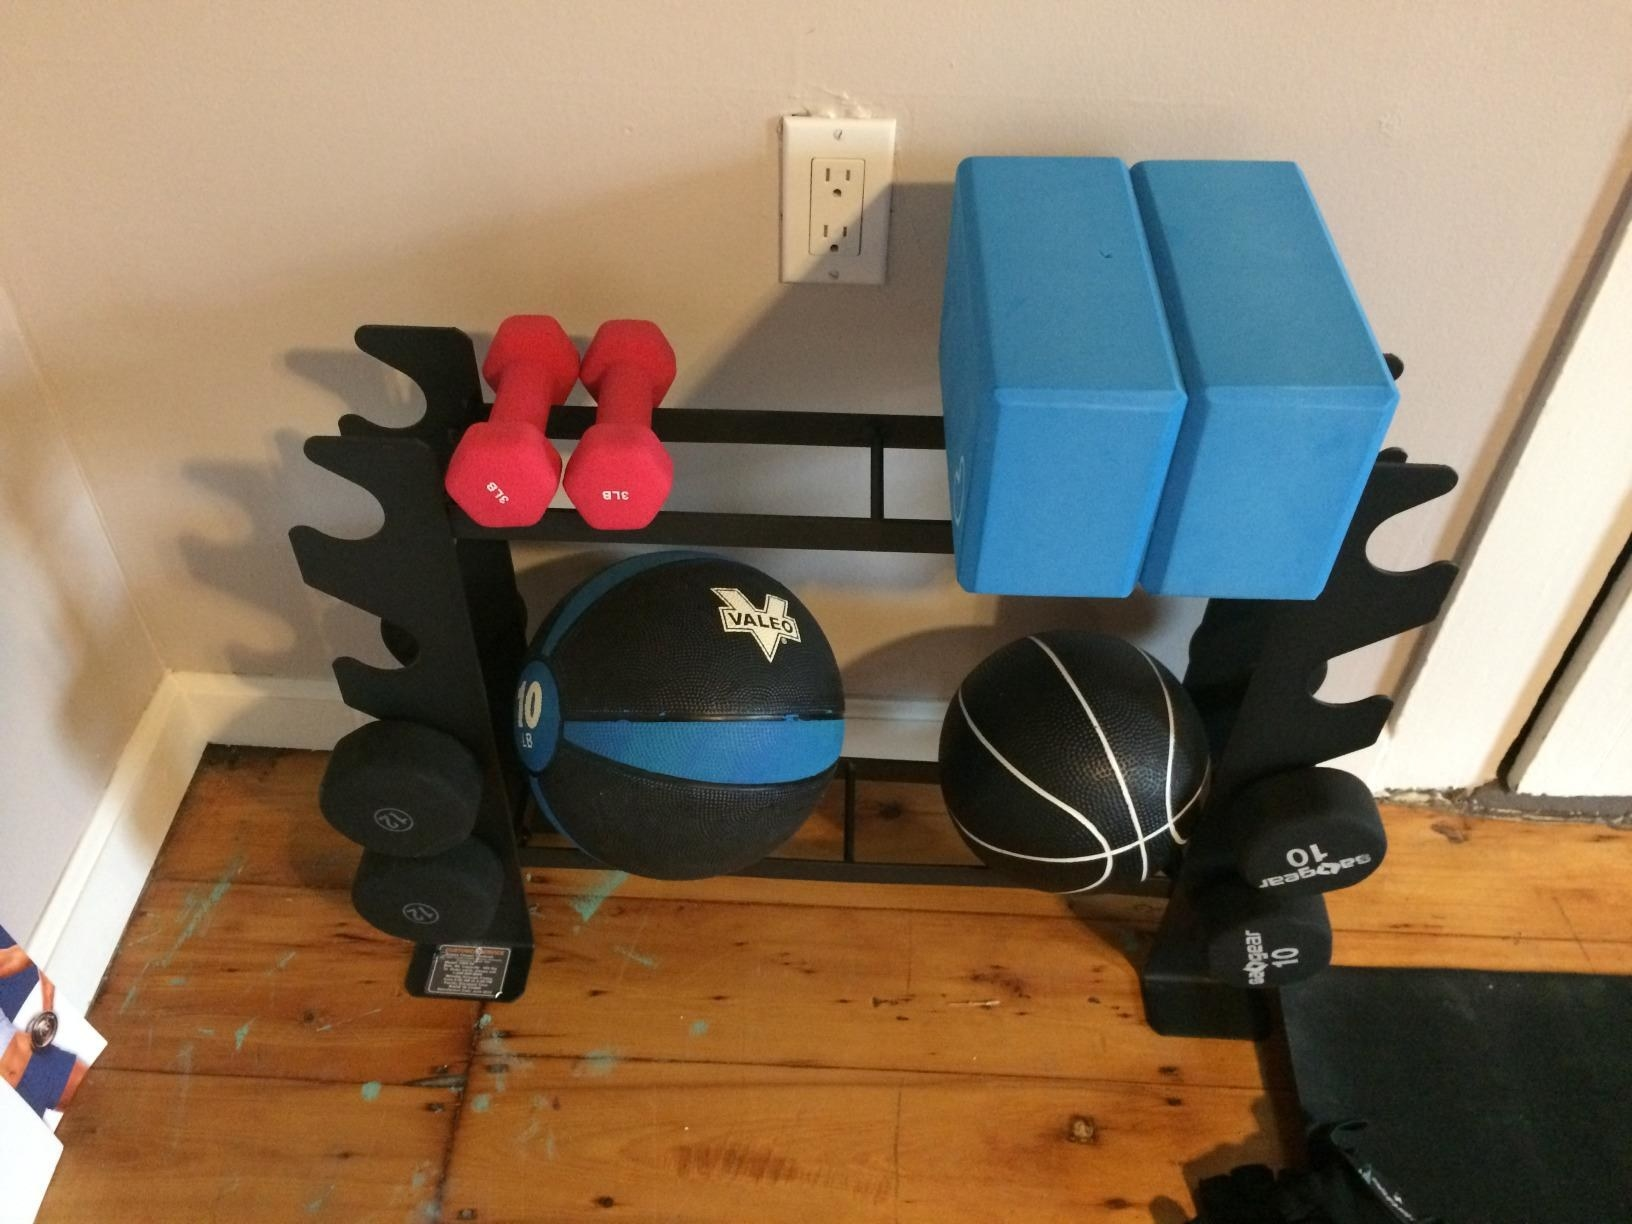 Review photo of the dumbbell and free weight stand